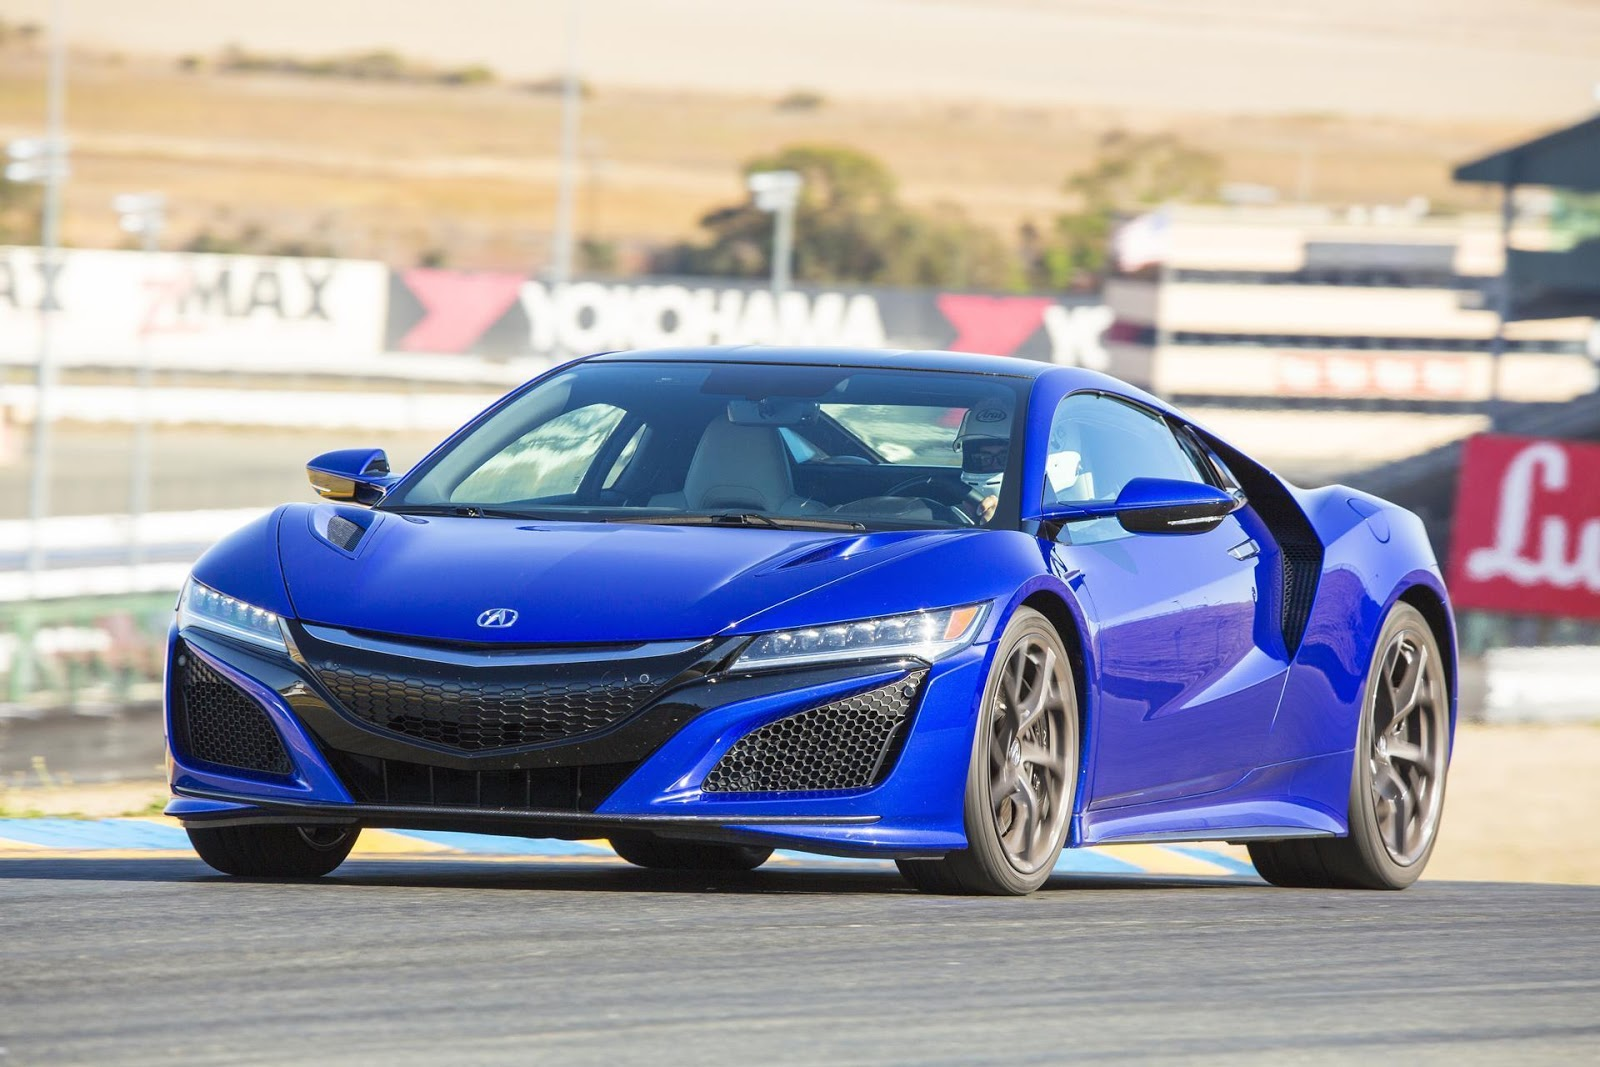 2017 Acura NSX Wallpapers car wallpapers hd